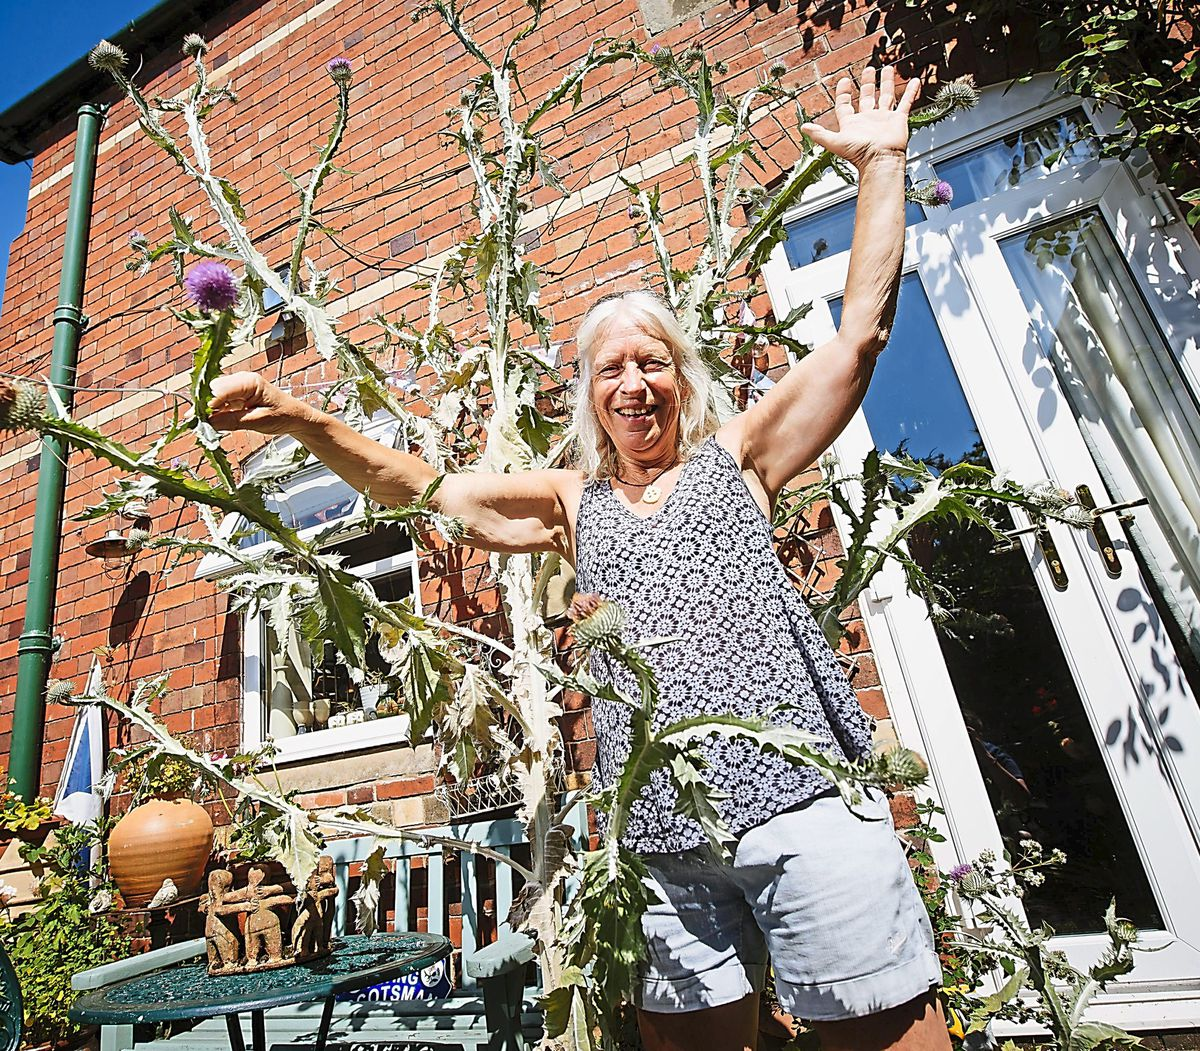 LAST COPYRIGHT SHROPSHIRE STAR JAMIE RICKETTS 19/07/2021 - Jade Paton from Newport, Shropshire has a 10ft Thistle in her back garden!.